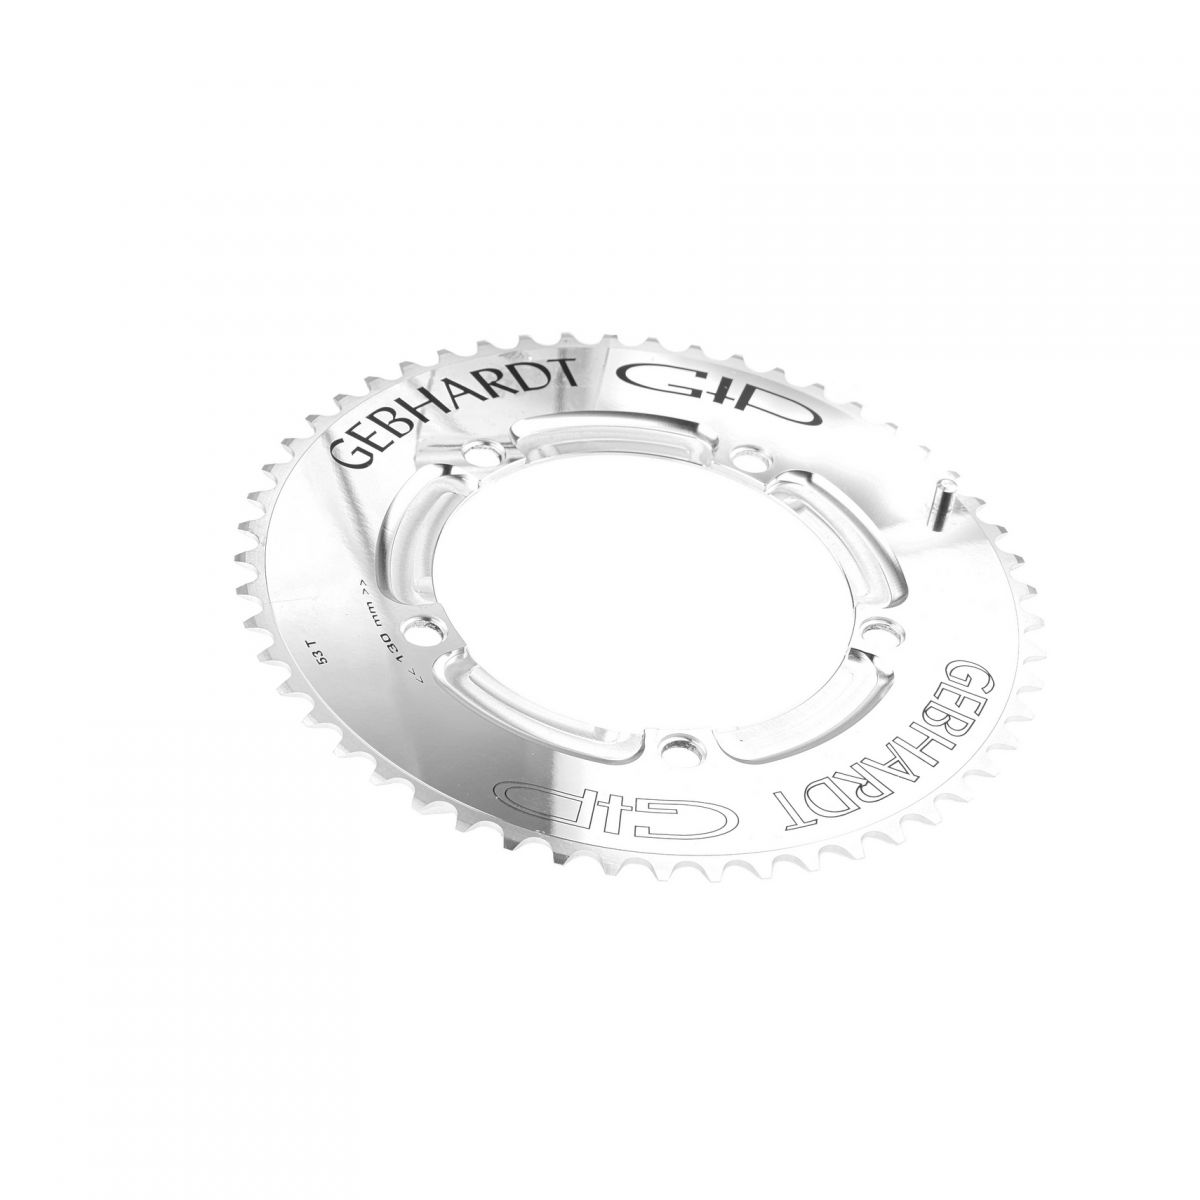 gebhardt chainring cnc ch time trial bcd 130 mm 5hole 53t silver